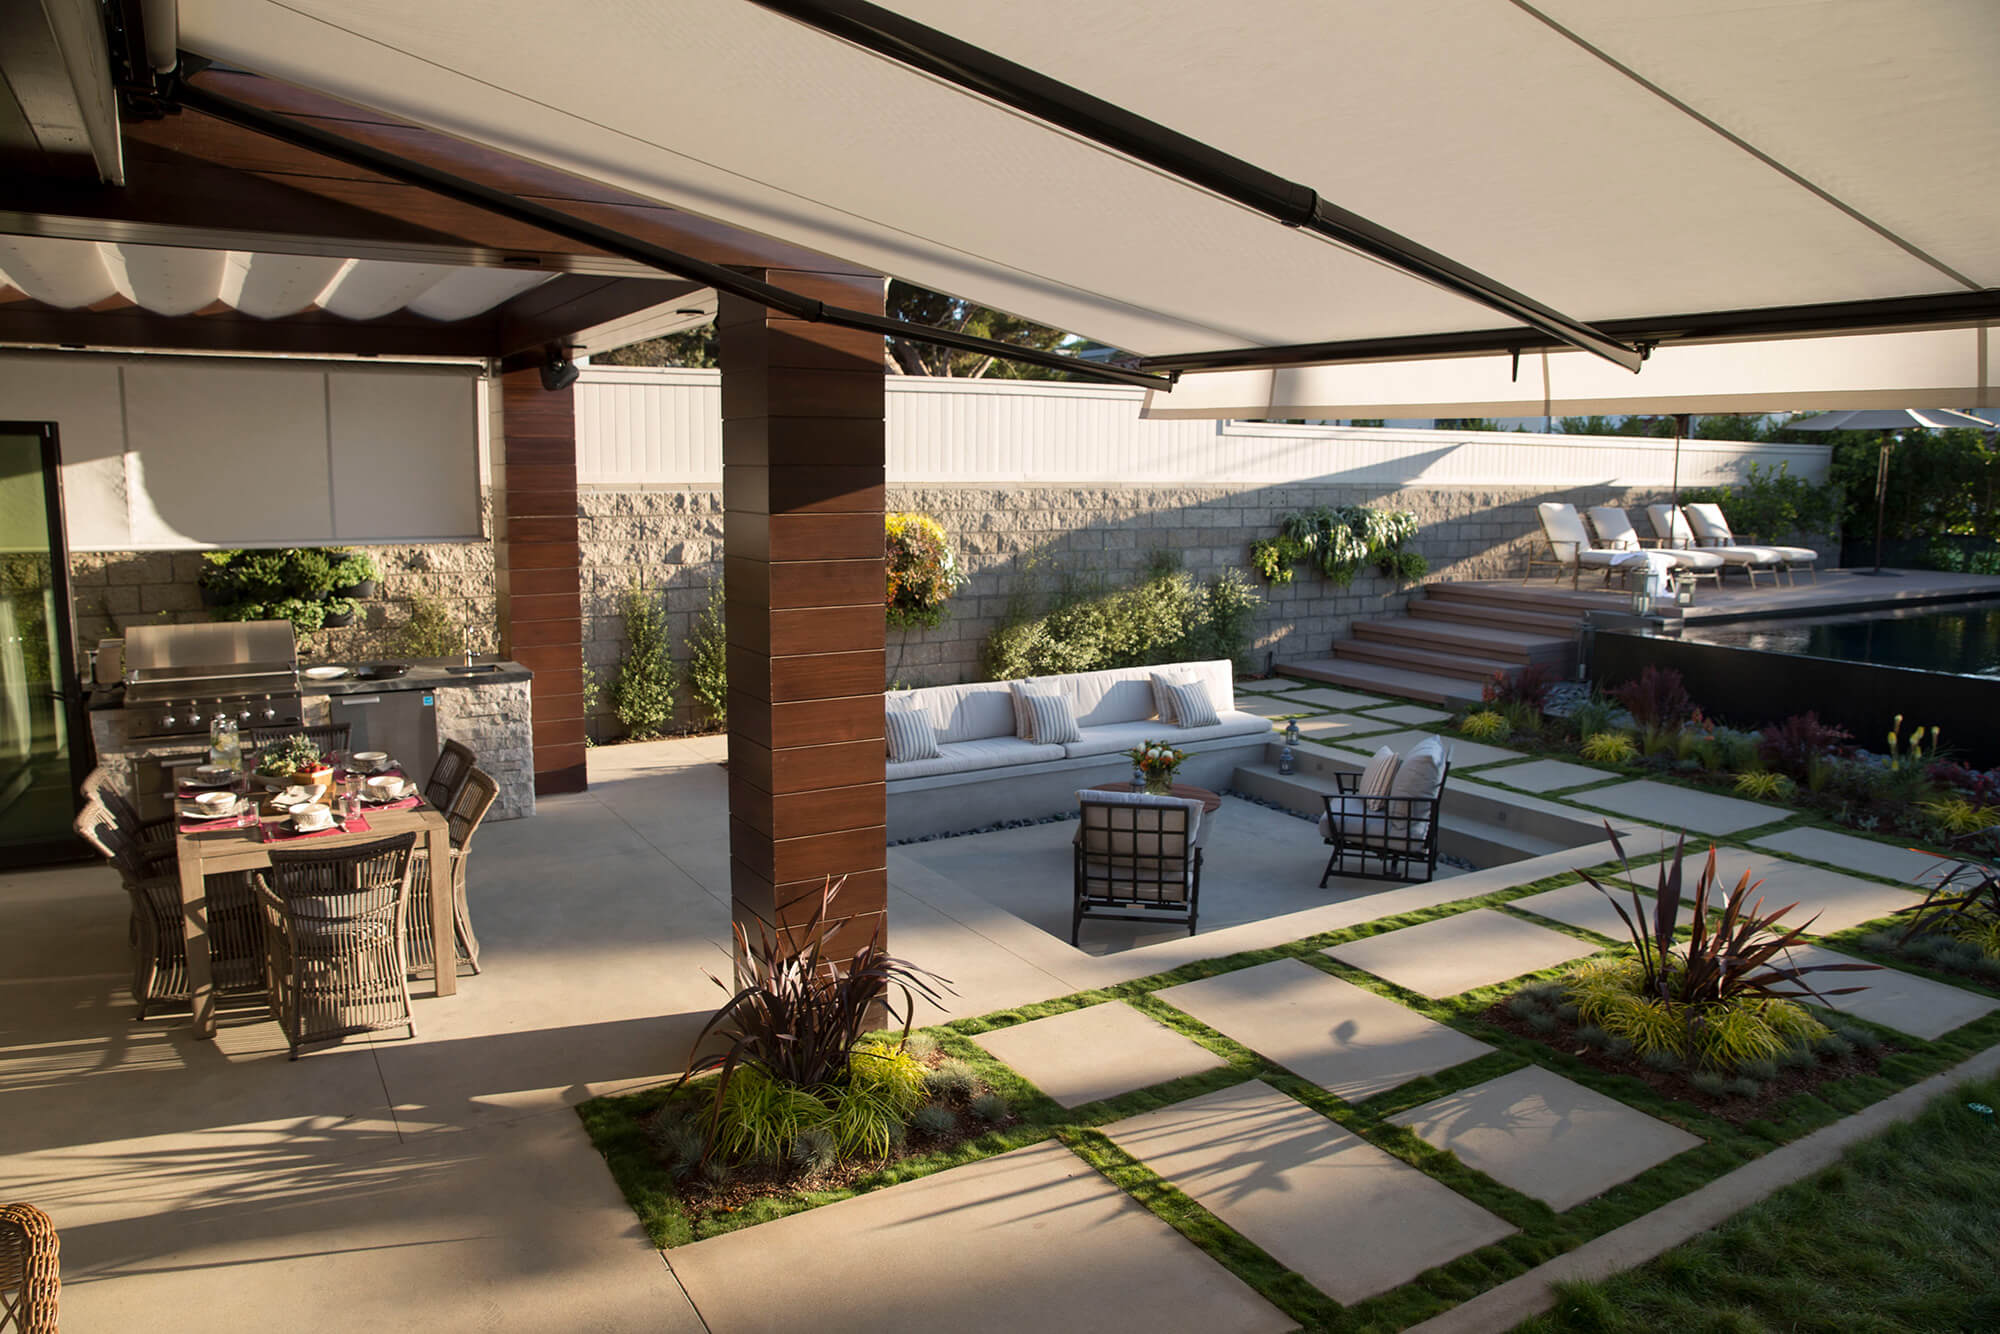 Patio Underneath A Retractable Awning Made With Silver Sunbrella Fabric